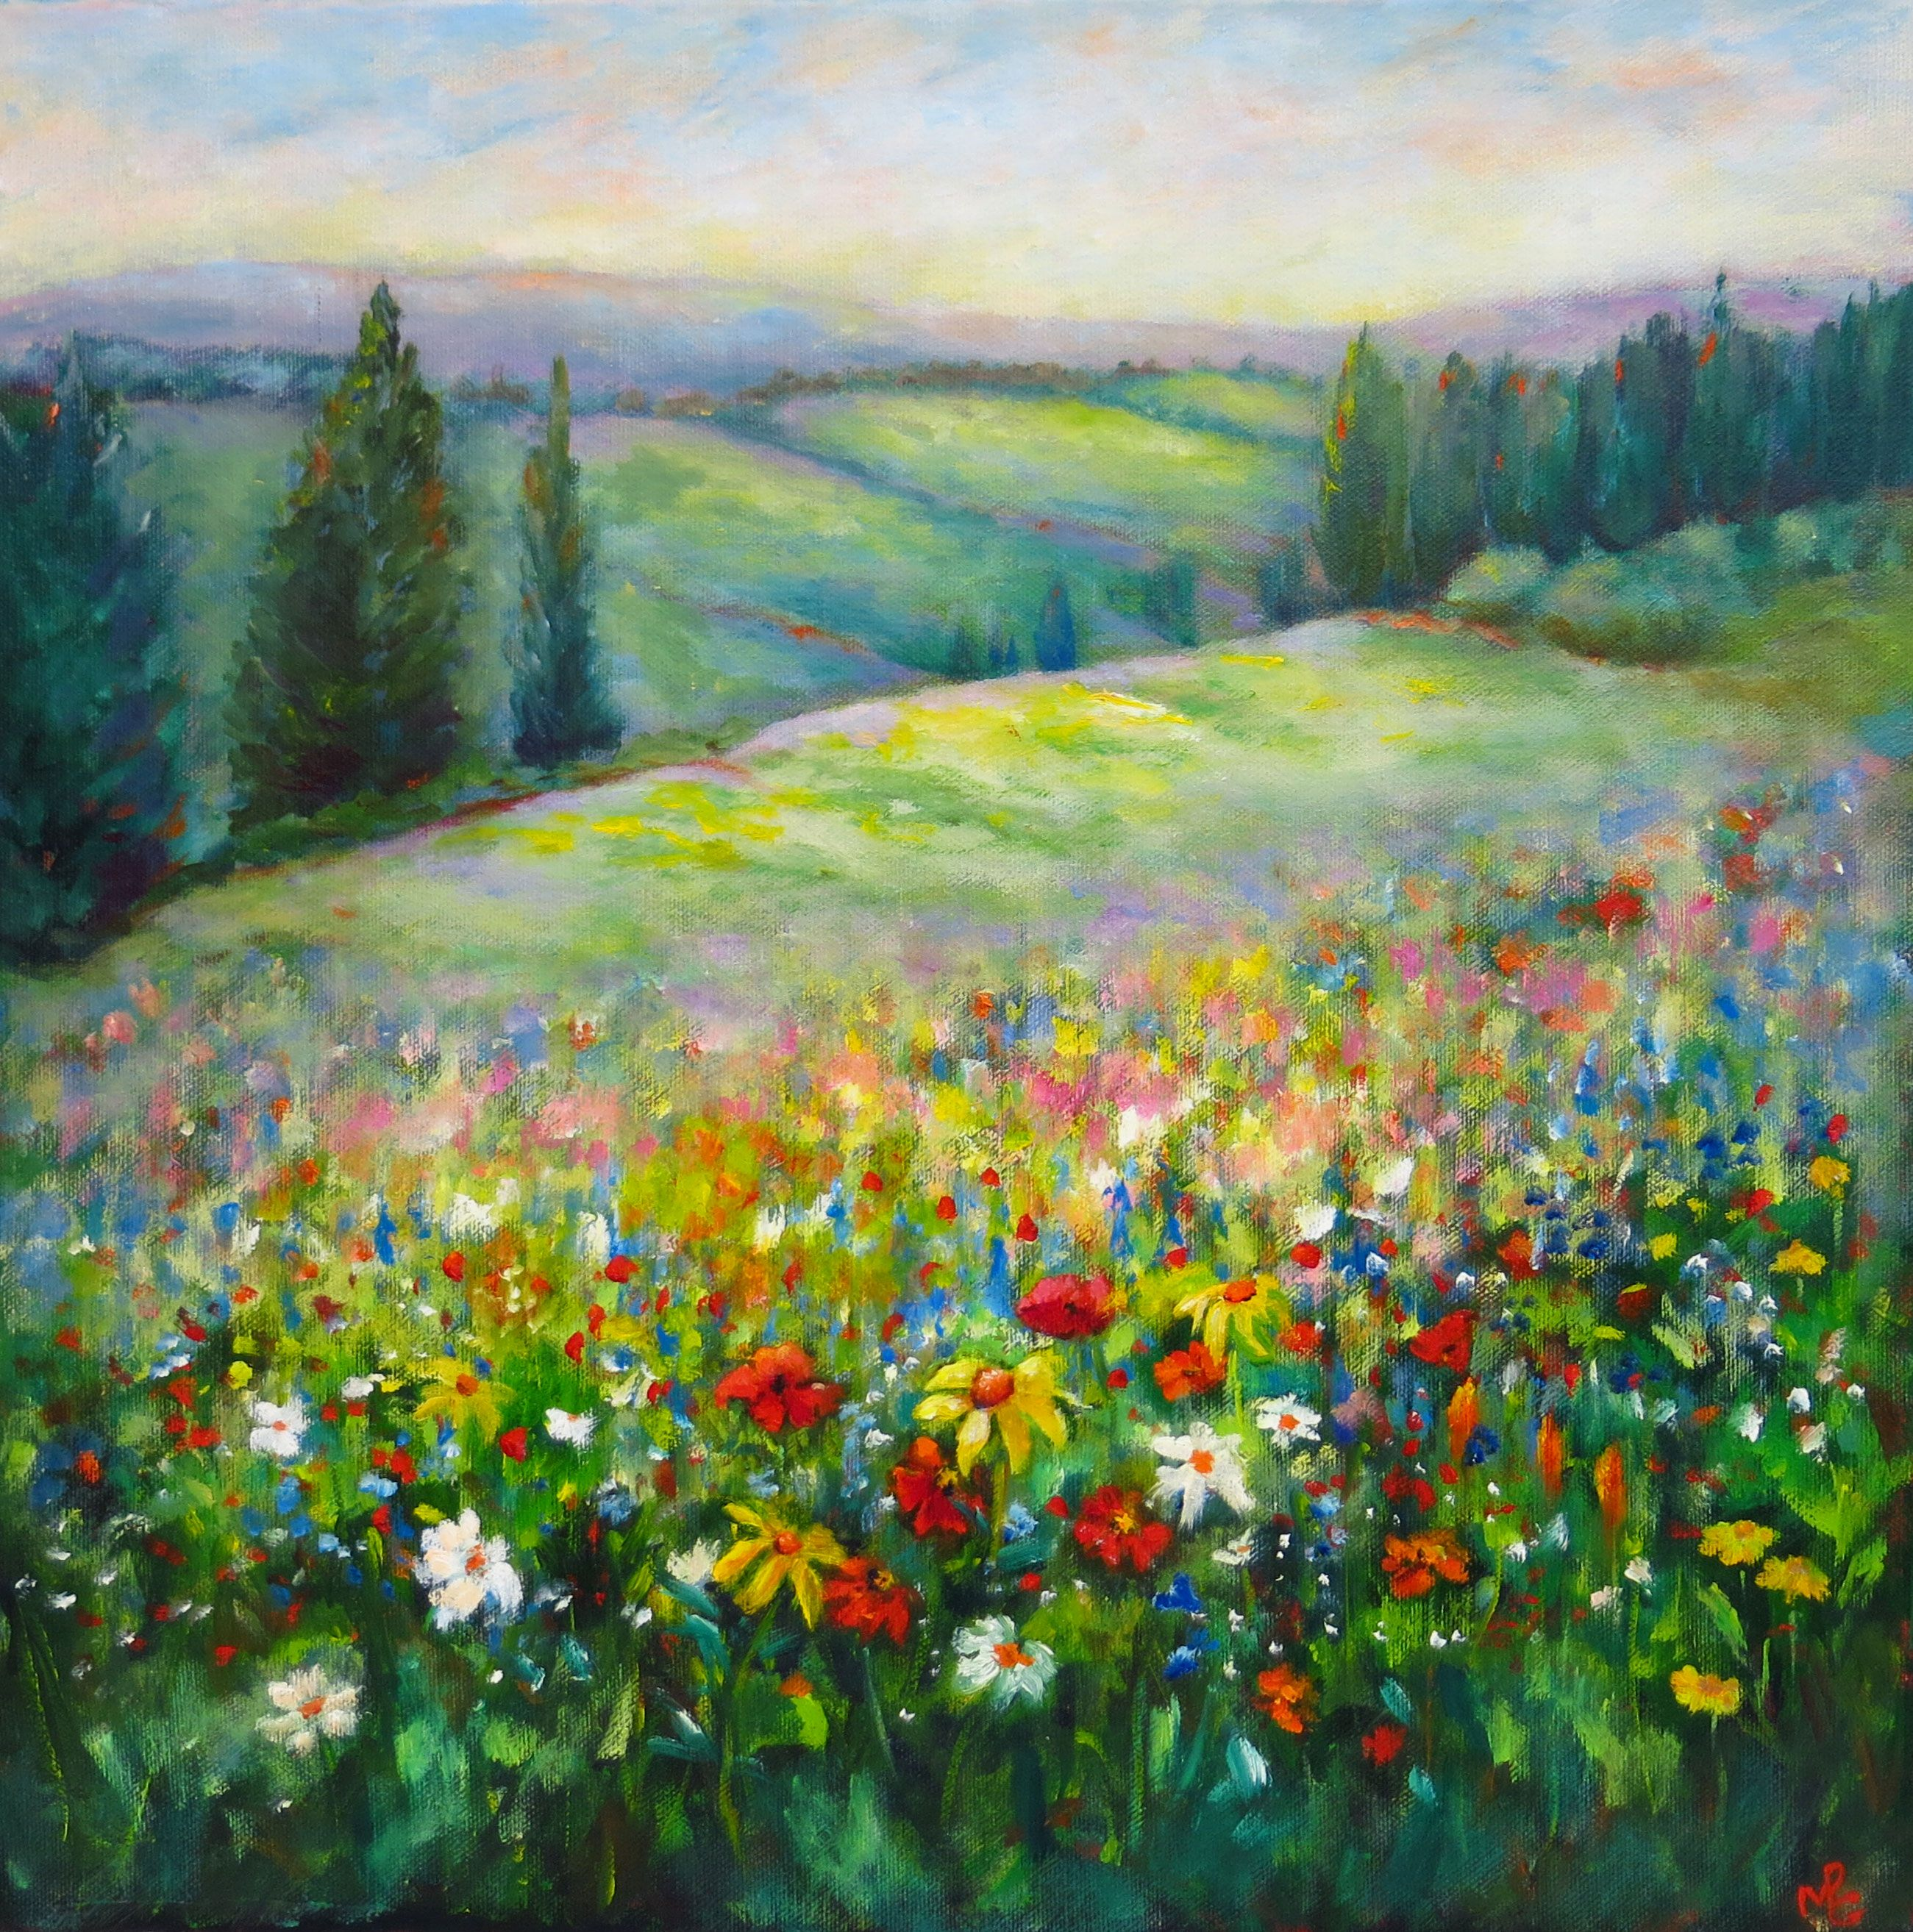 Pin on Landscape Paintings